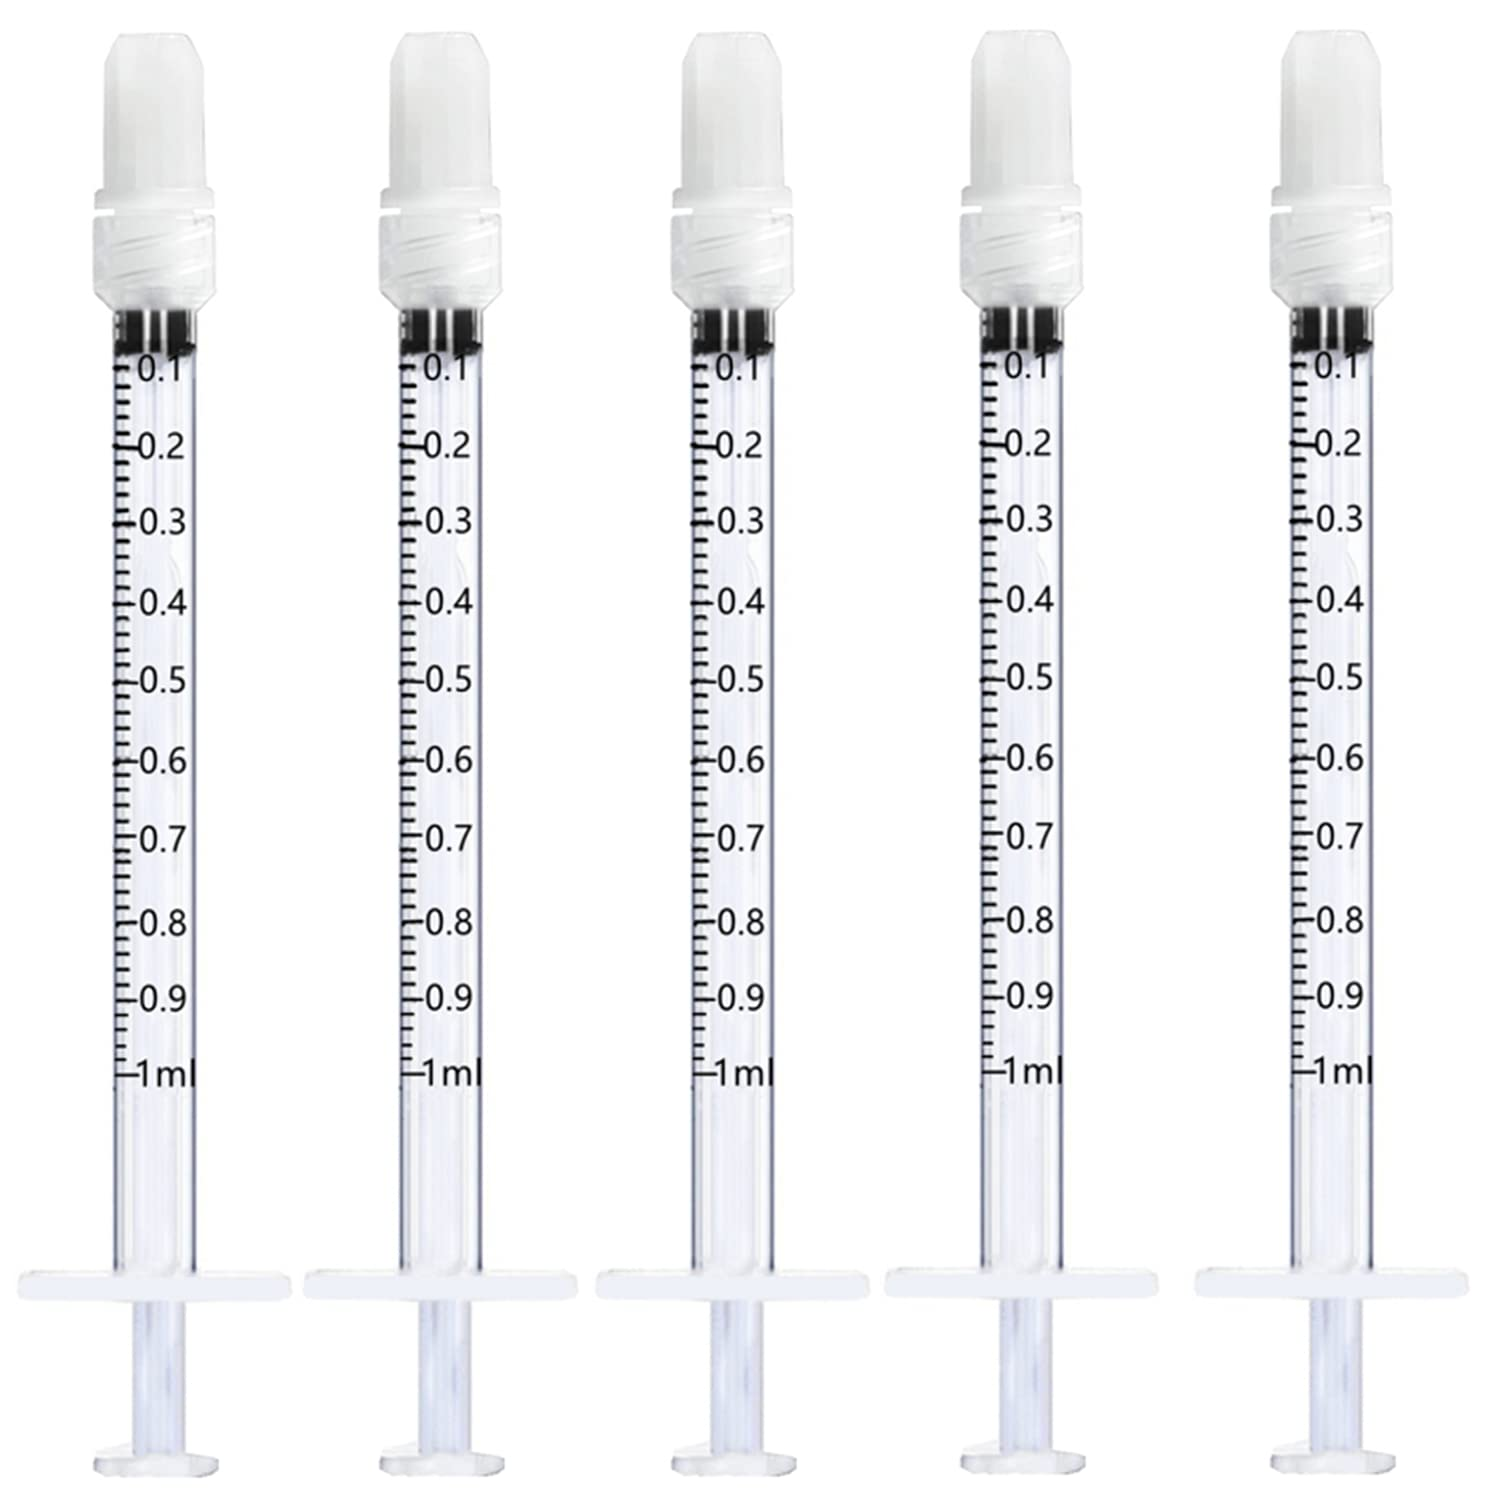 1ml Plastic Luer National uniform free shipping Max 79% OFF Lock Syringes with DI for Labs Scientific Cap